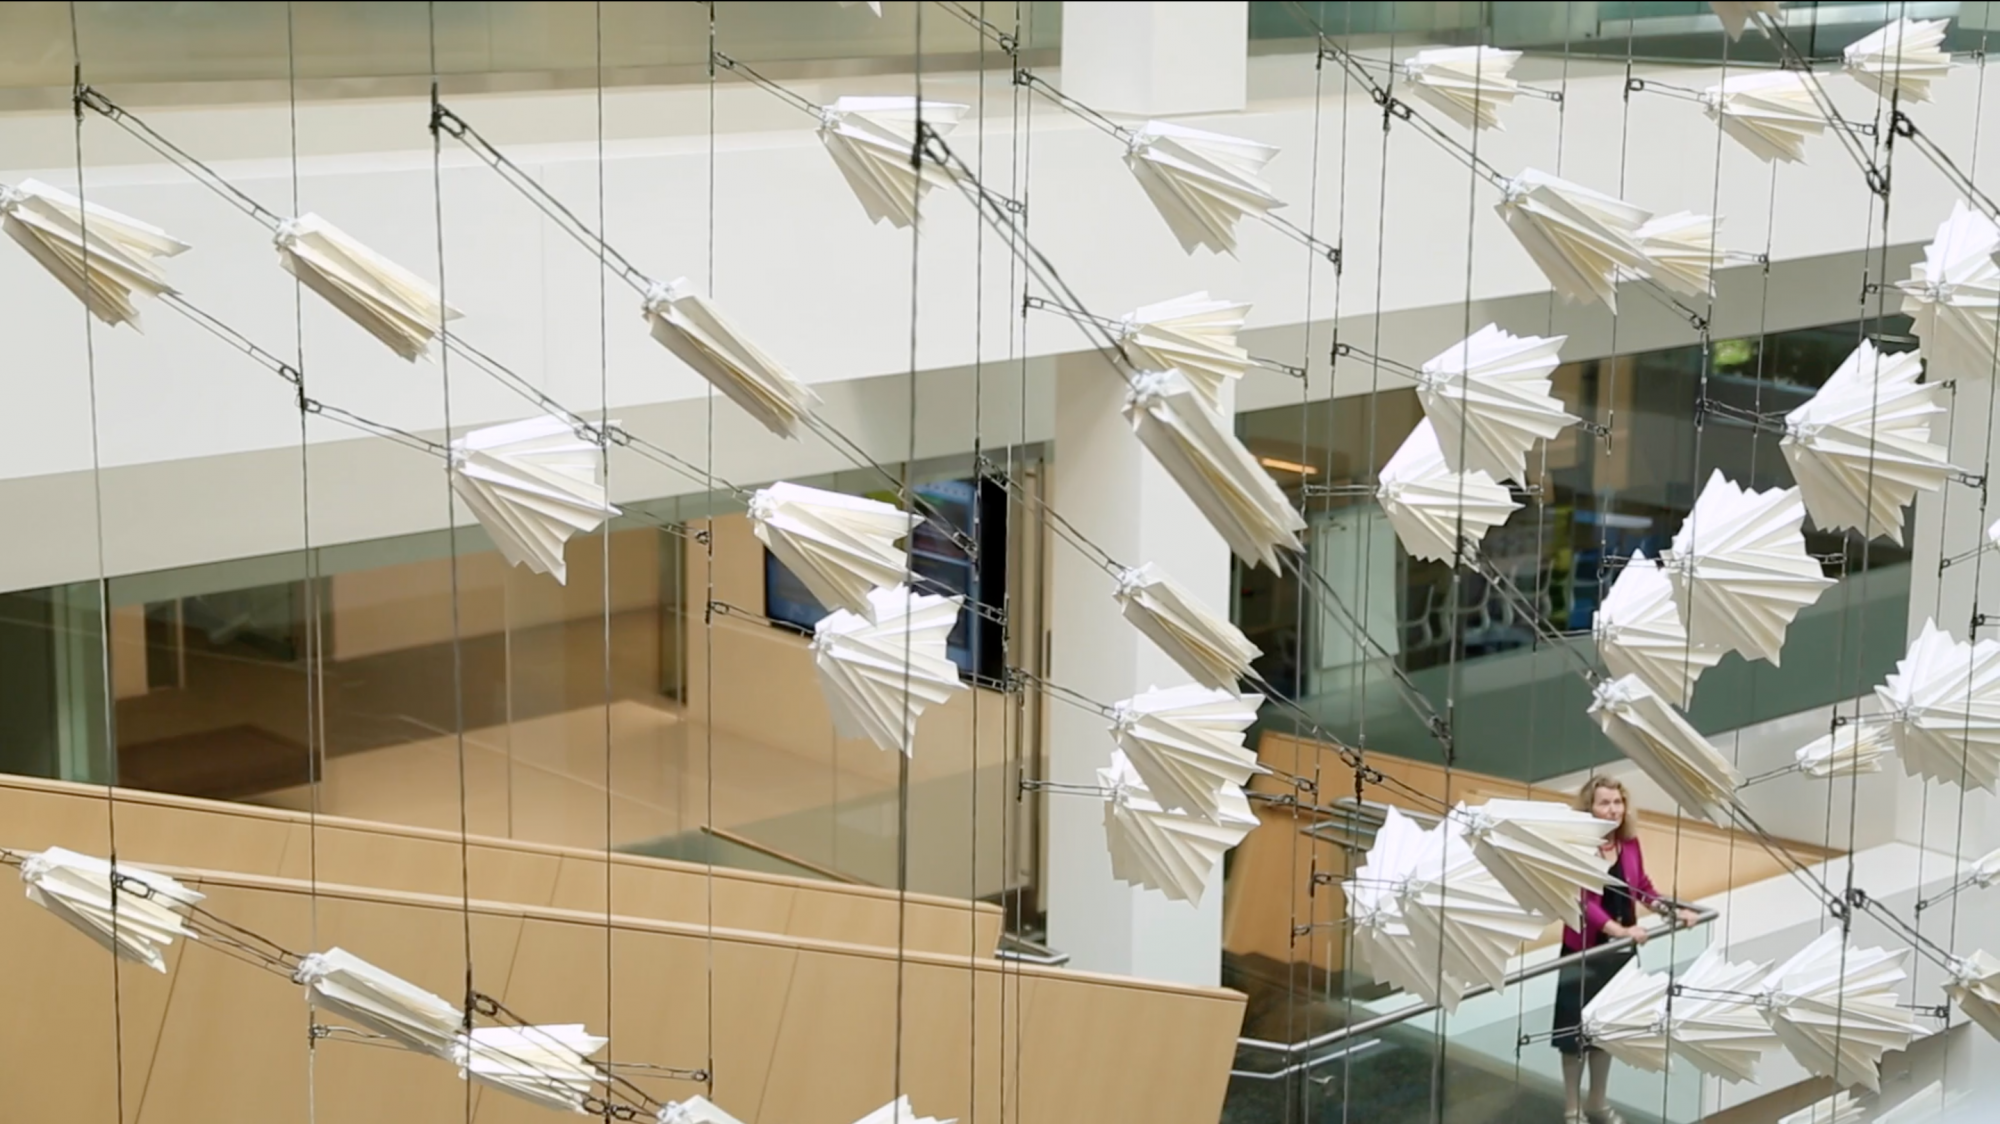 A Kinetic Sculpture Revealing the Movements of An Invisible Flock of Birds